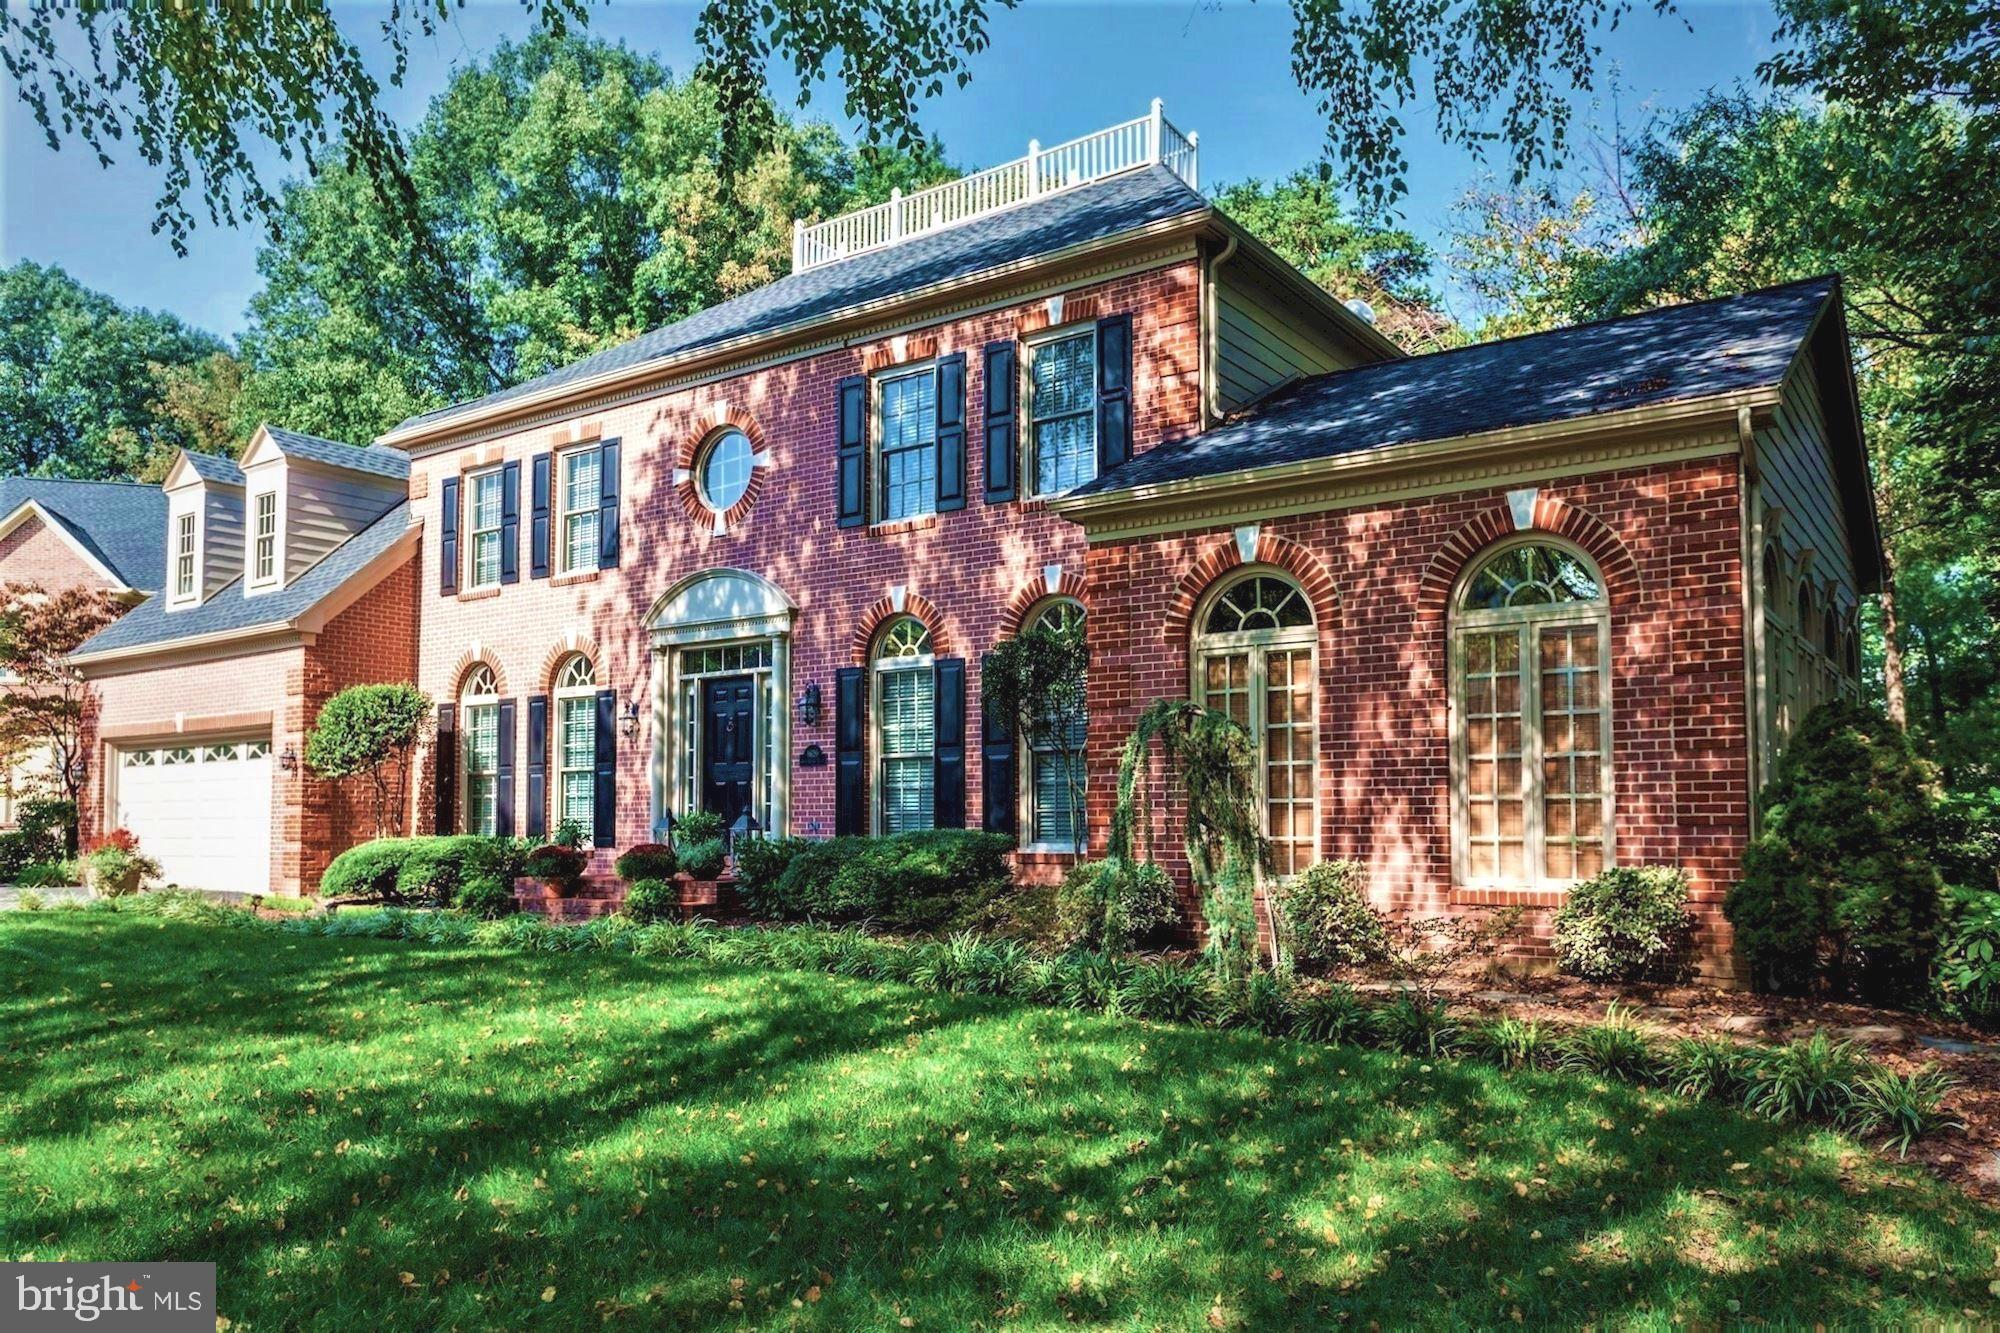 Elegant Georgian Colonial embraces charm & beauty in the sought-after community of Crosspointe. This stunning home features a spectacular sunroom accented by Palladian windows with French doors opening to a brick patio and a tranquil setting. The family room is truly the heart of the home, featuring an inviting fireplace framed by soaring 2-story windows with a sweeping view of the backyard. The adjoining eat-in kitchen features granite counter tops, stainless steel appliances, a new double oven, and a gas cooktop w/ telescopic downdraft. French doors lead to the home office with handsome cabinetry. Both the formal dining and living room are appointed with Palladian windows. The upper level boasts an impressive spa-inspired master bath, featuring an oversized soaking tub, luxurious shower with natural stone marble and heated floors. The master bedroom has a cathedral ceiling and lovely new oak hand-scrapped hardwood floors. A mirror pocket door opens to the walk-in wardrobe with coffee station & mini refrigerator. The dressing area is appointed with a set of 3 architectural mirror doors, each faceted with crystal knobs. The remodeled hall bath has a jetted tub, cantilever double vanity, solid cherry cabinets and is cleverly designed with a separate water closet and washbowl, providing private bedroom access. The lower level is perfect for entertaining. Enjoy movies with surround sound, serve refreshments at the wet bar, and play a game of pool with table that conveys. The finished lower level provides a comfortable space for an au pair and out of town guests, offering an updated full bath, 5th bedroom, an additional bonus room, a play room/exercise room, plus ample storage. The exterior features architectural roofing shingles and HardiPlank siding. Sited on 0.48 acres, the property is professionally landscaped w/ natural fieldstone retaining rock walls and stone steppers. The grounds have an irrigation system and are landscaped w/ drainage and erosion control. The mature trees provide a lovely backdrop with a private setting to relax on the Trex deck or the flagstone patio. A meandering path leads to the garden shed, custom painted to harmoniously blend. Home is equipped with a security system and a 20kW back-up generator. Amenities of Crosspointe include two swimming pools, tennis courts, soccer field, walking trials, and two scenic ponds. Residents have convenient access to I95, the Fairfax County Pkwy, and to VRE, offering a rail transit alternative.